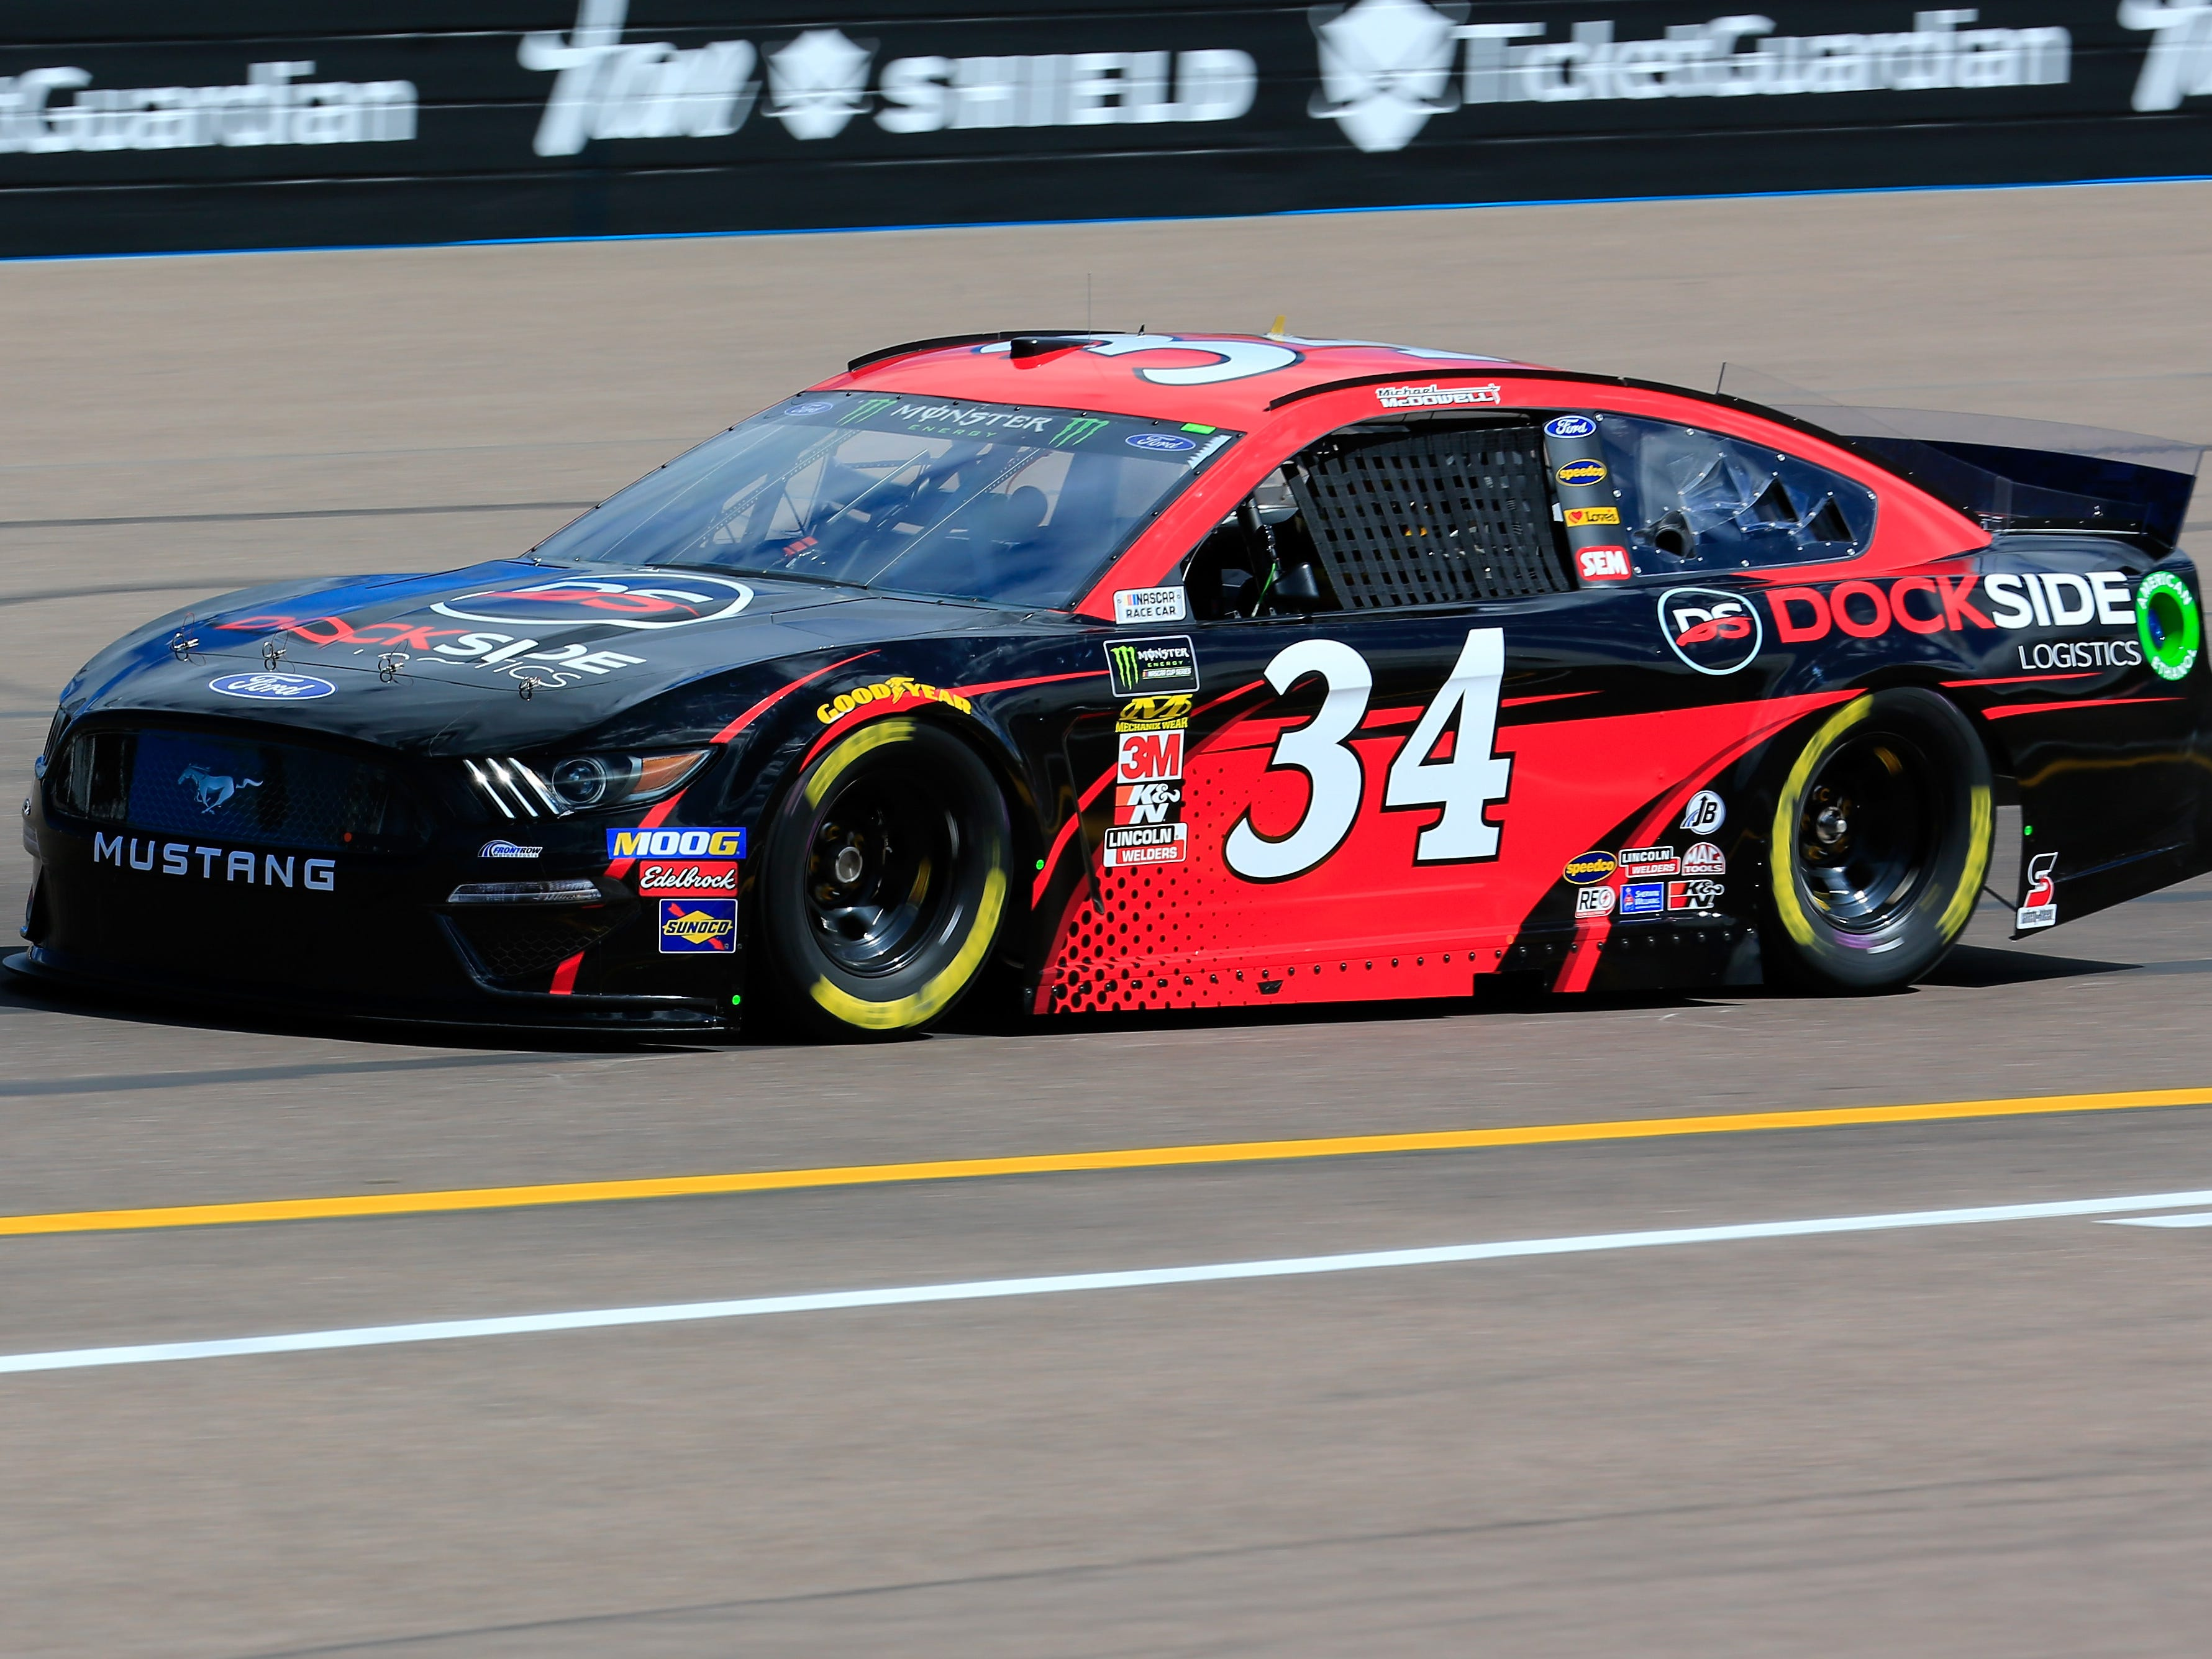 AVONDALE, AZ - MARCH 08: Michael McDowell, driver of the #34 Dockside Logistics Ford, practices for the Monster Energy NASCAR Cup Series TicketGuardian 500 at ISM Raceway on March 8, 2019 in Avondale, Arizona.